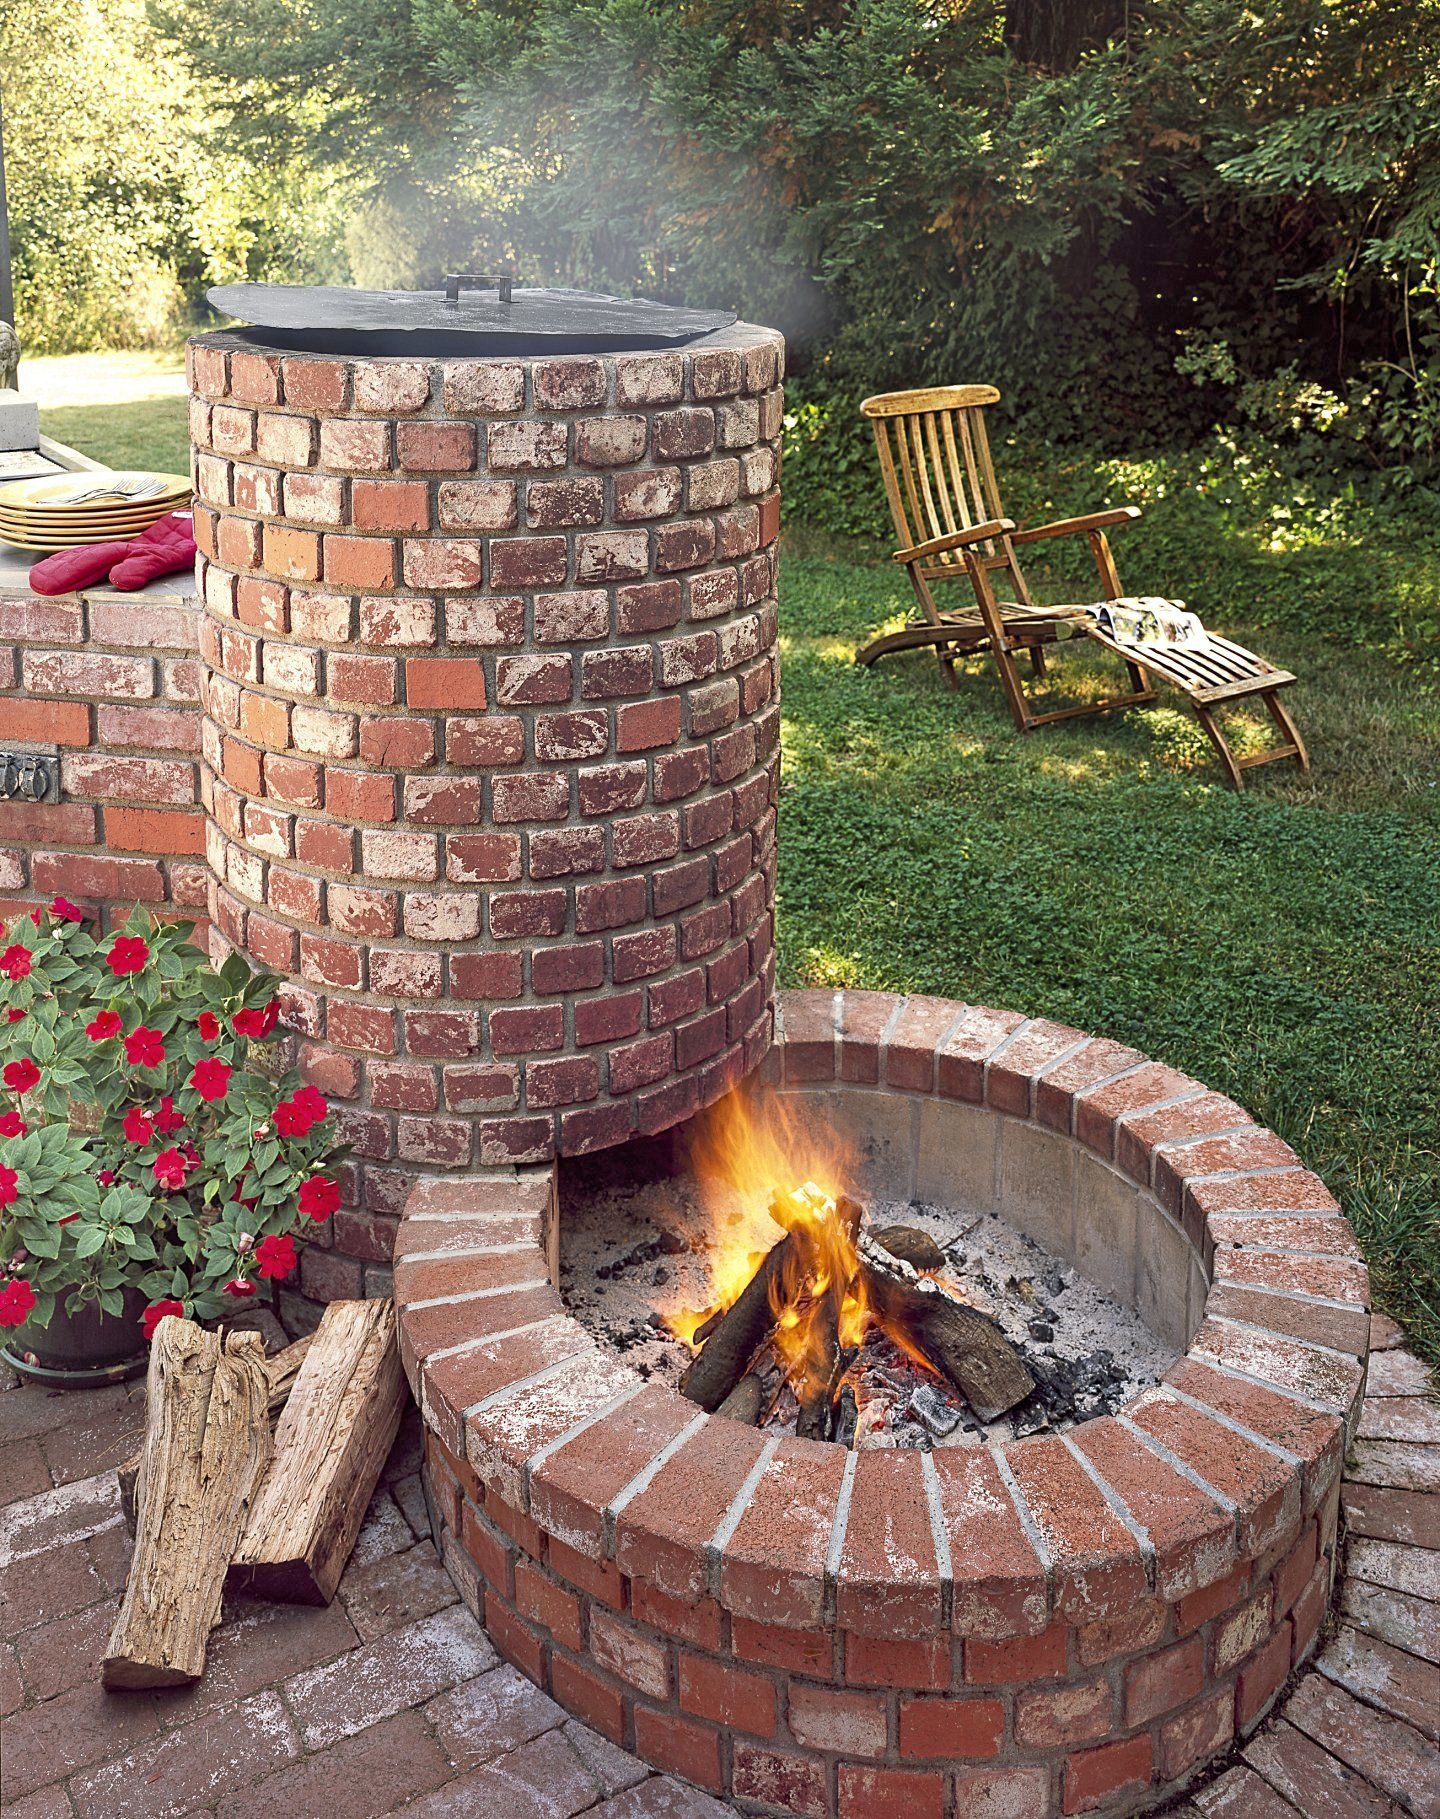 How To Start A Fire In A Fire Pit In 2020 Backyard Backyard Bbq Pit Fire Pit Backyard